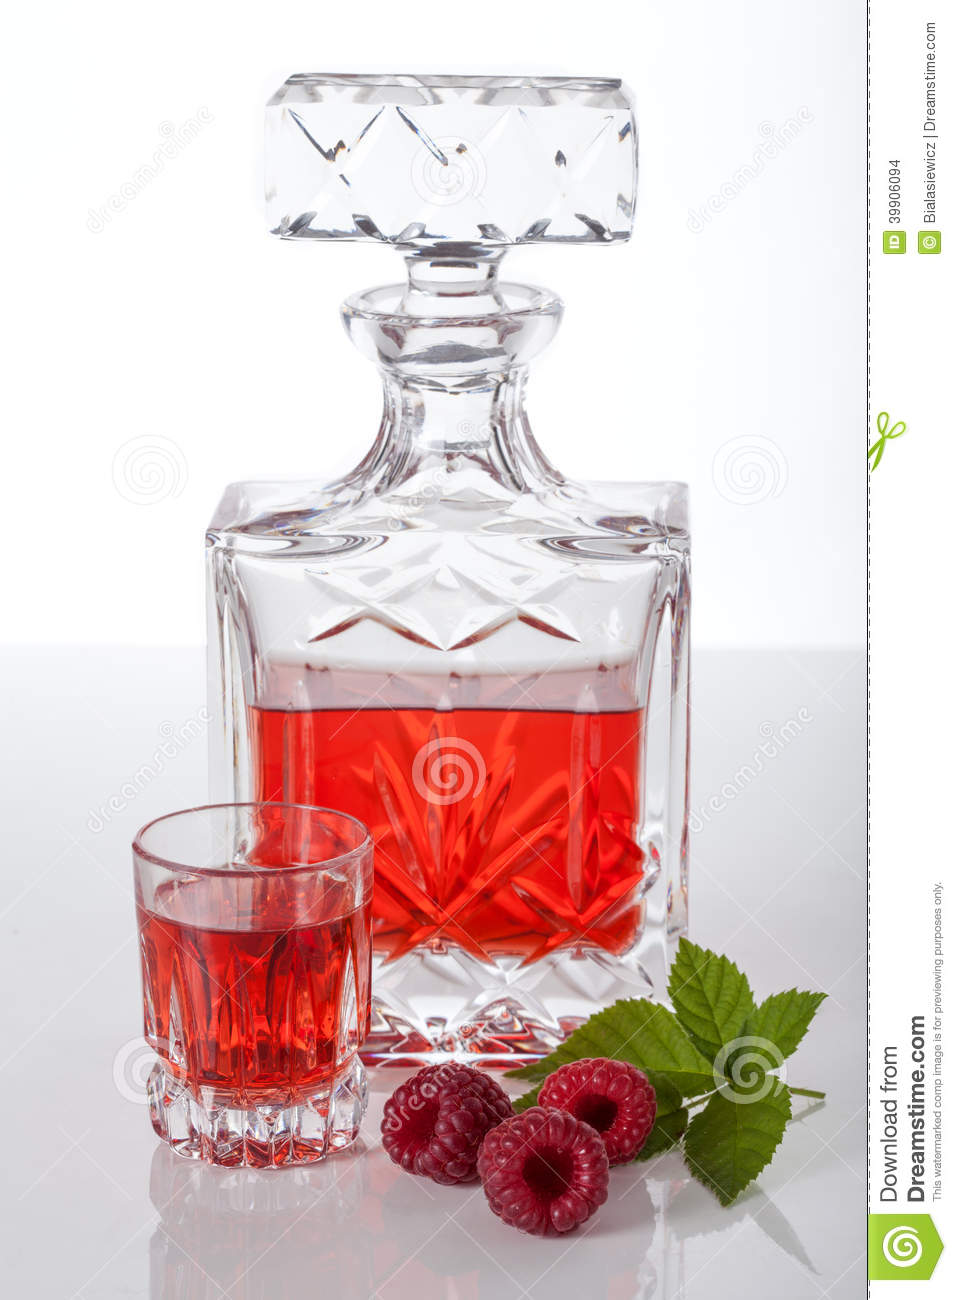 Homemade Raspberry Liqueur Stock Photo - Image: 39906094